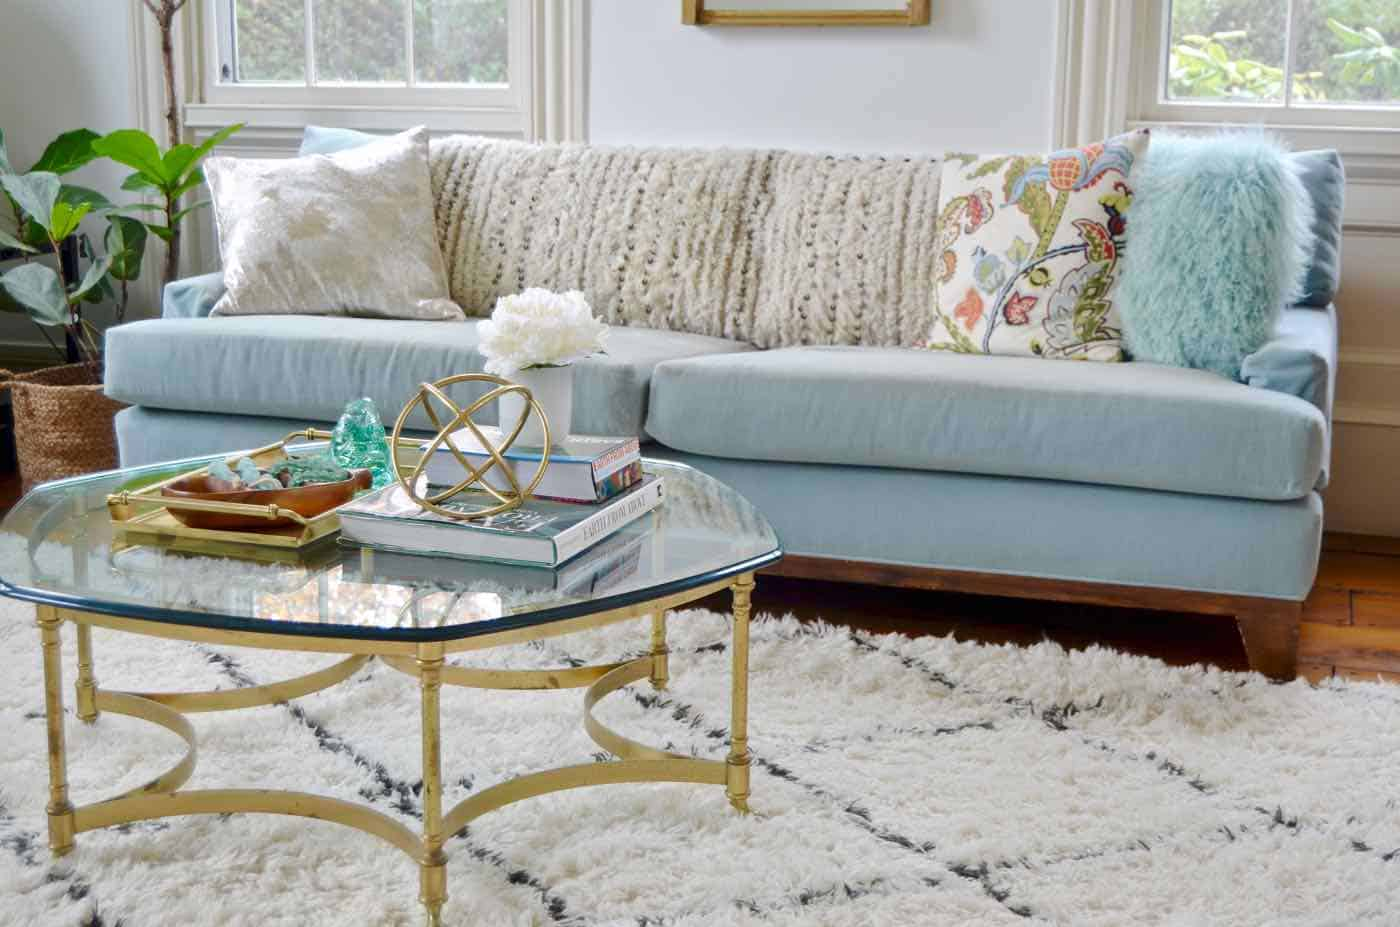 Glass coffee table in living room